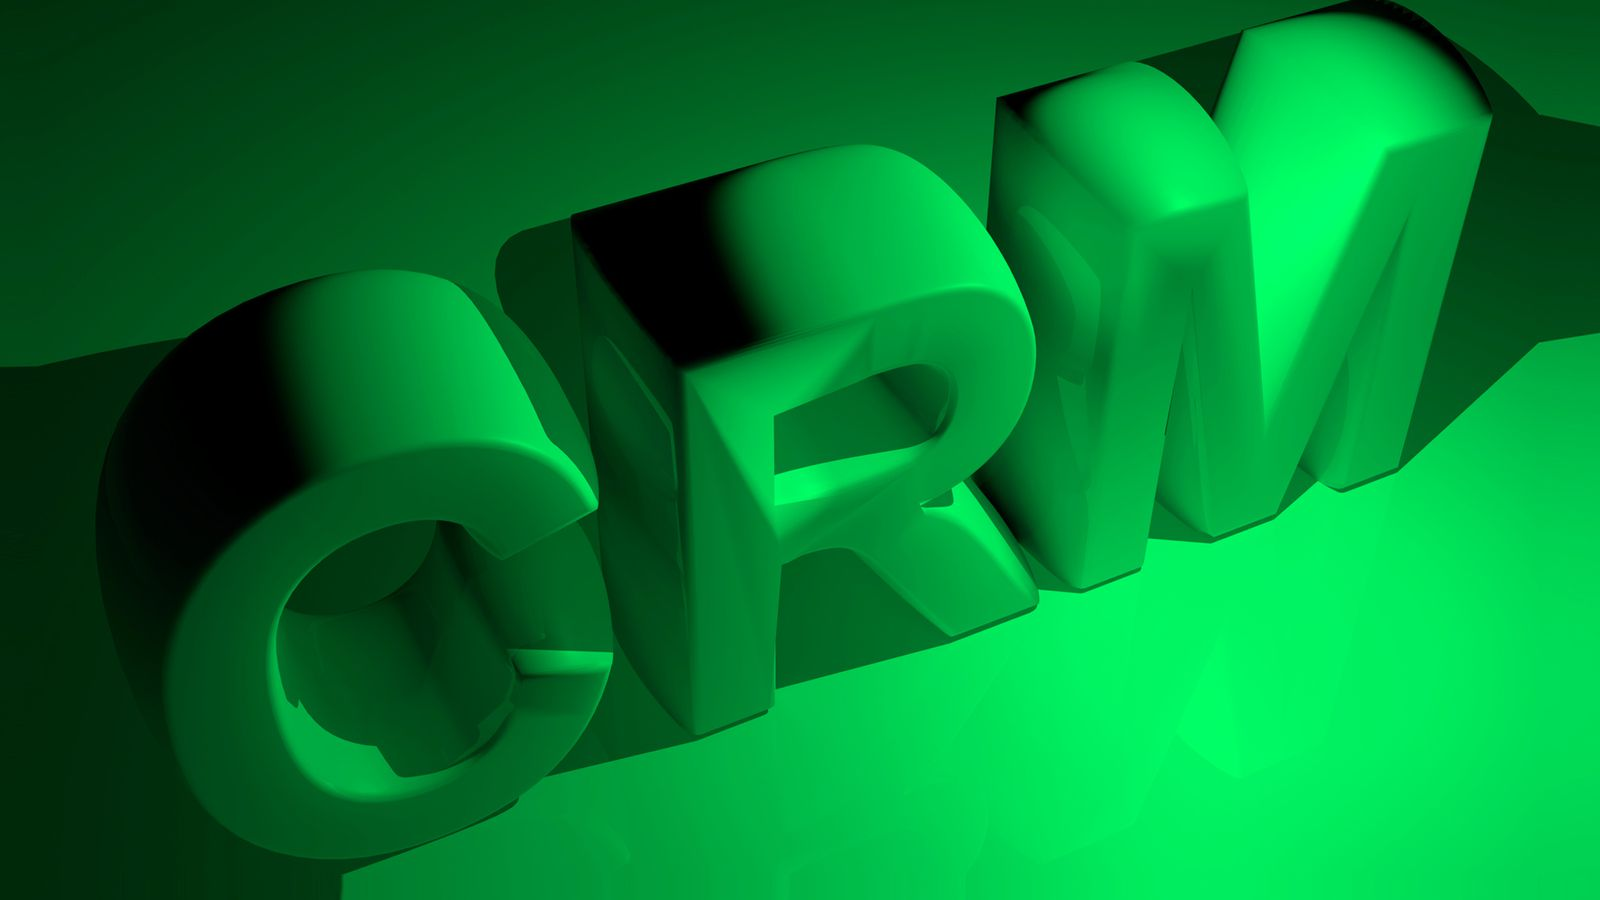 crm-green-2